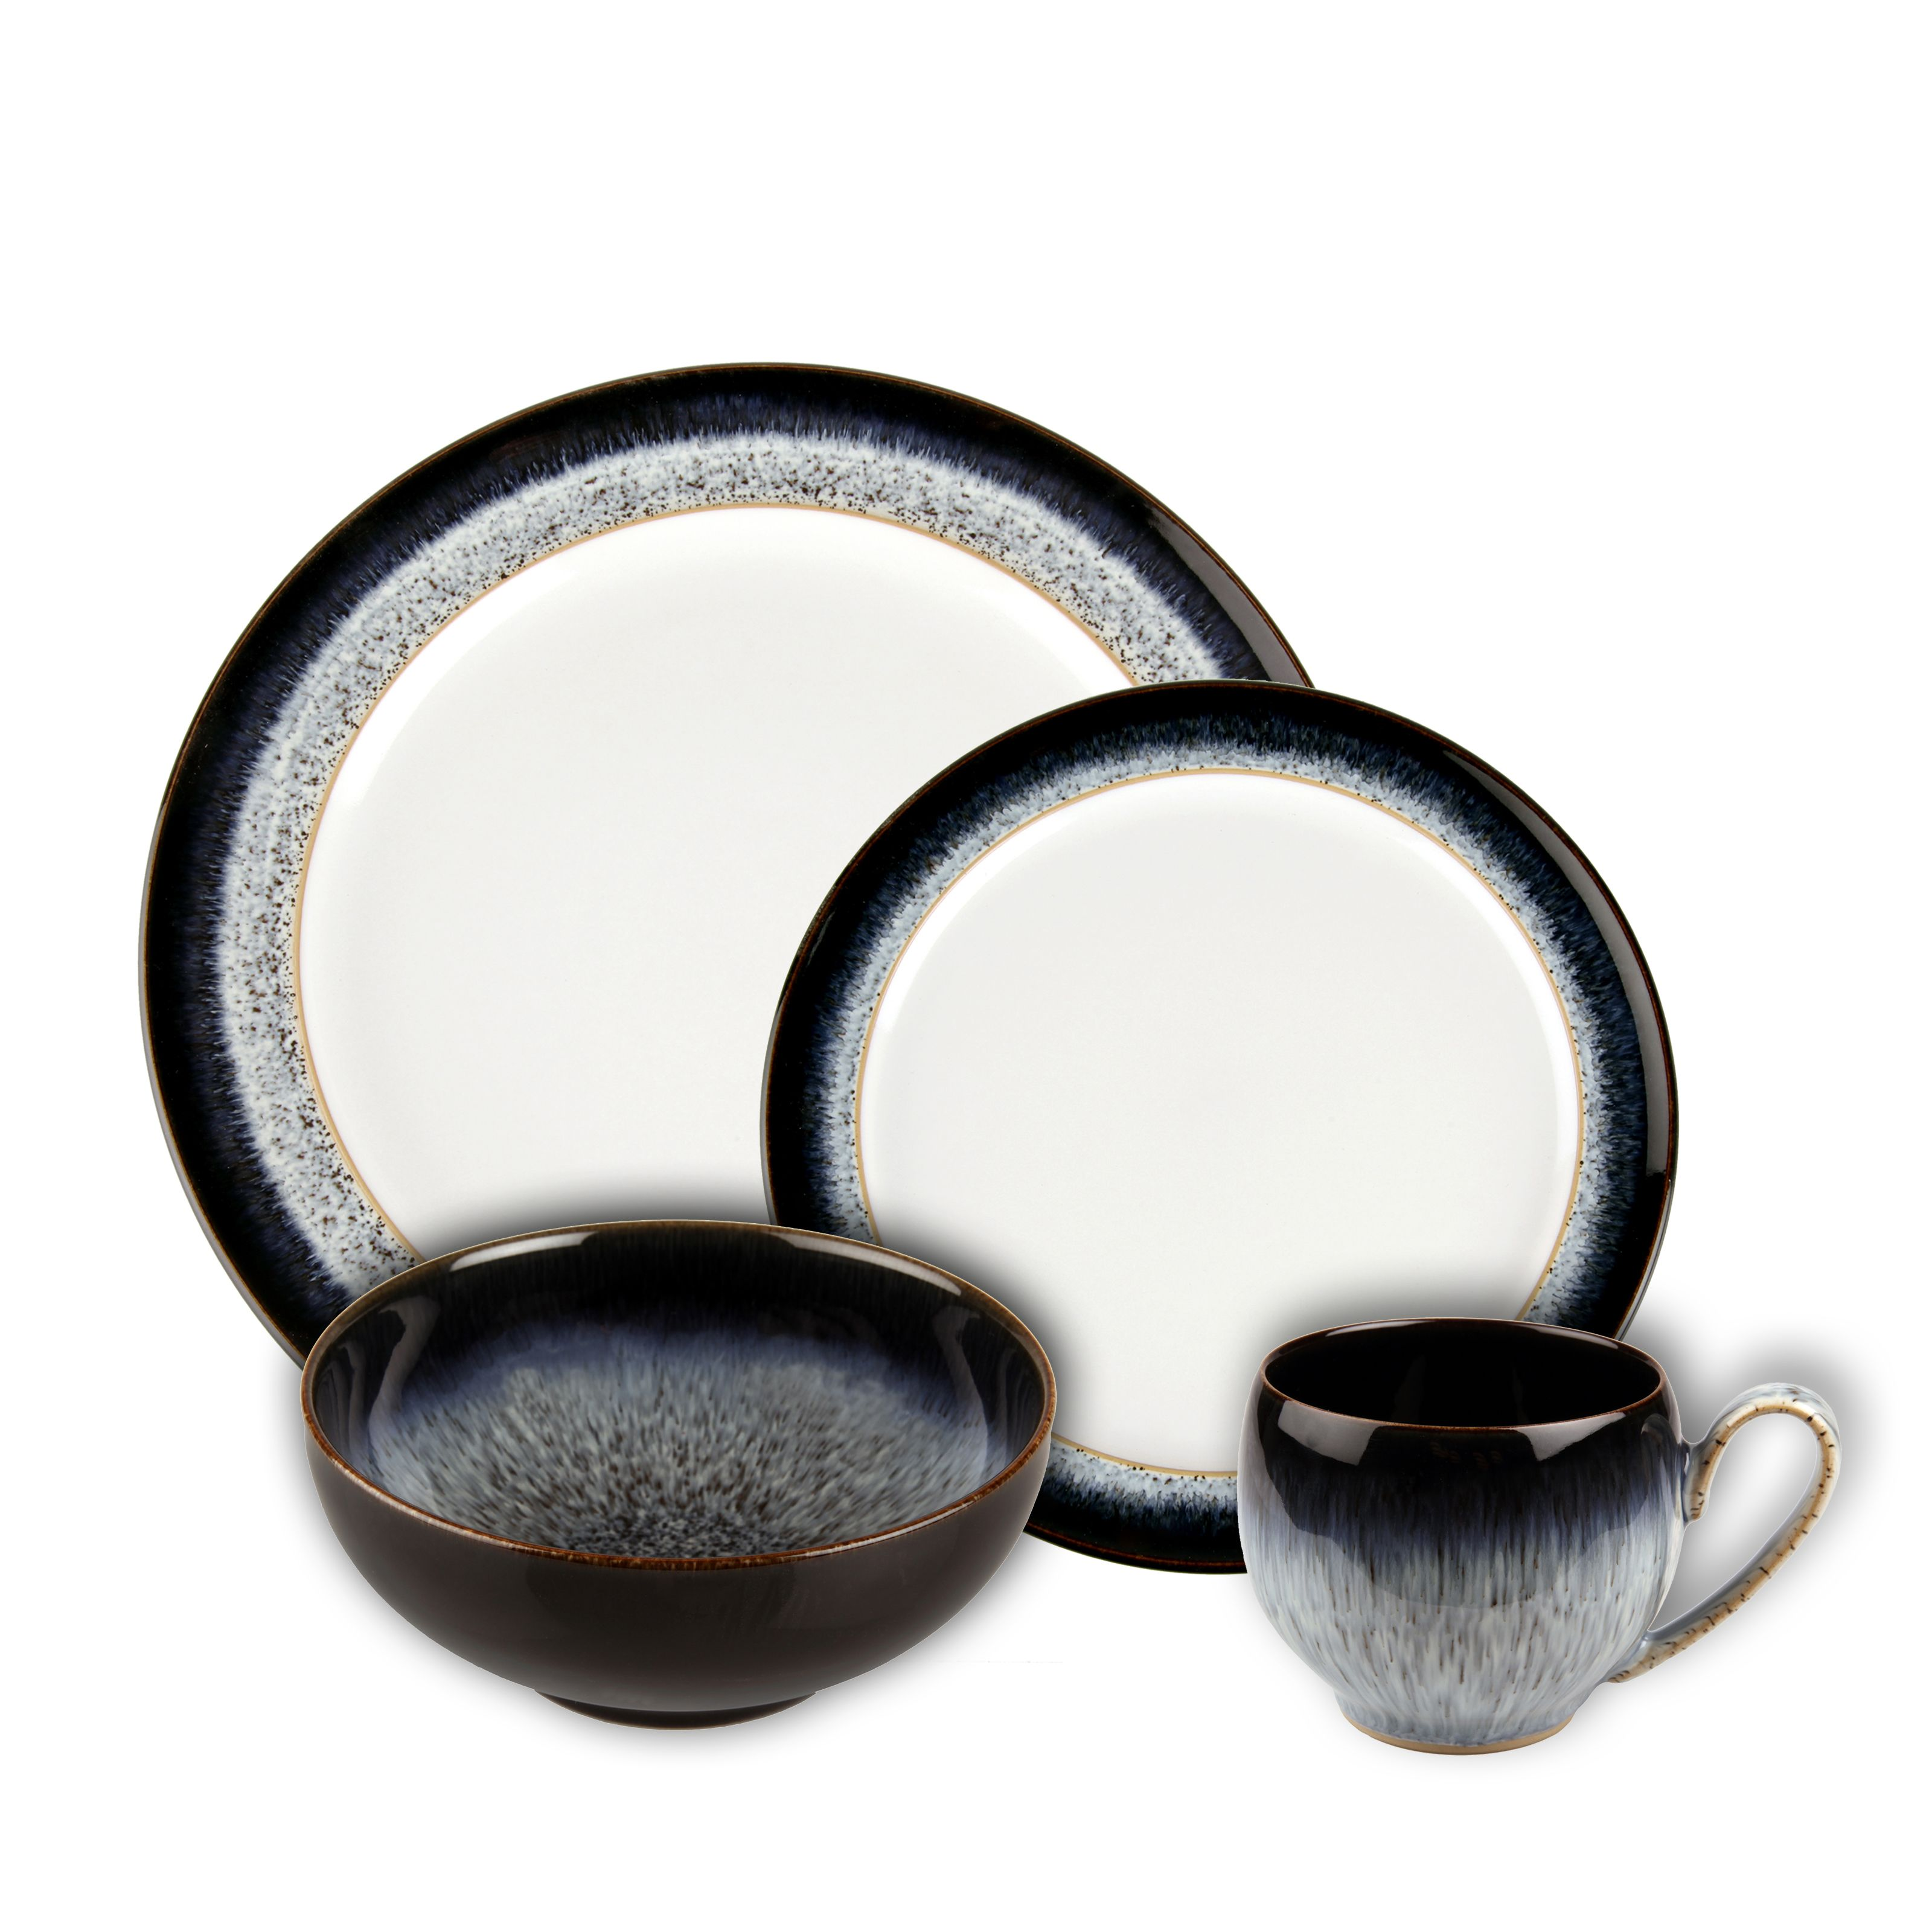 Dinner Sets Denby Dinnerware Cookware u0026 Glassware  sc 1 st  Pinterest & A statement Halo dinner set for Dad. | Denby: Fatheru0027s Day ...